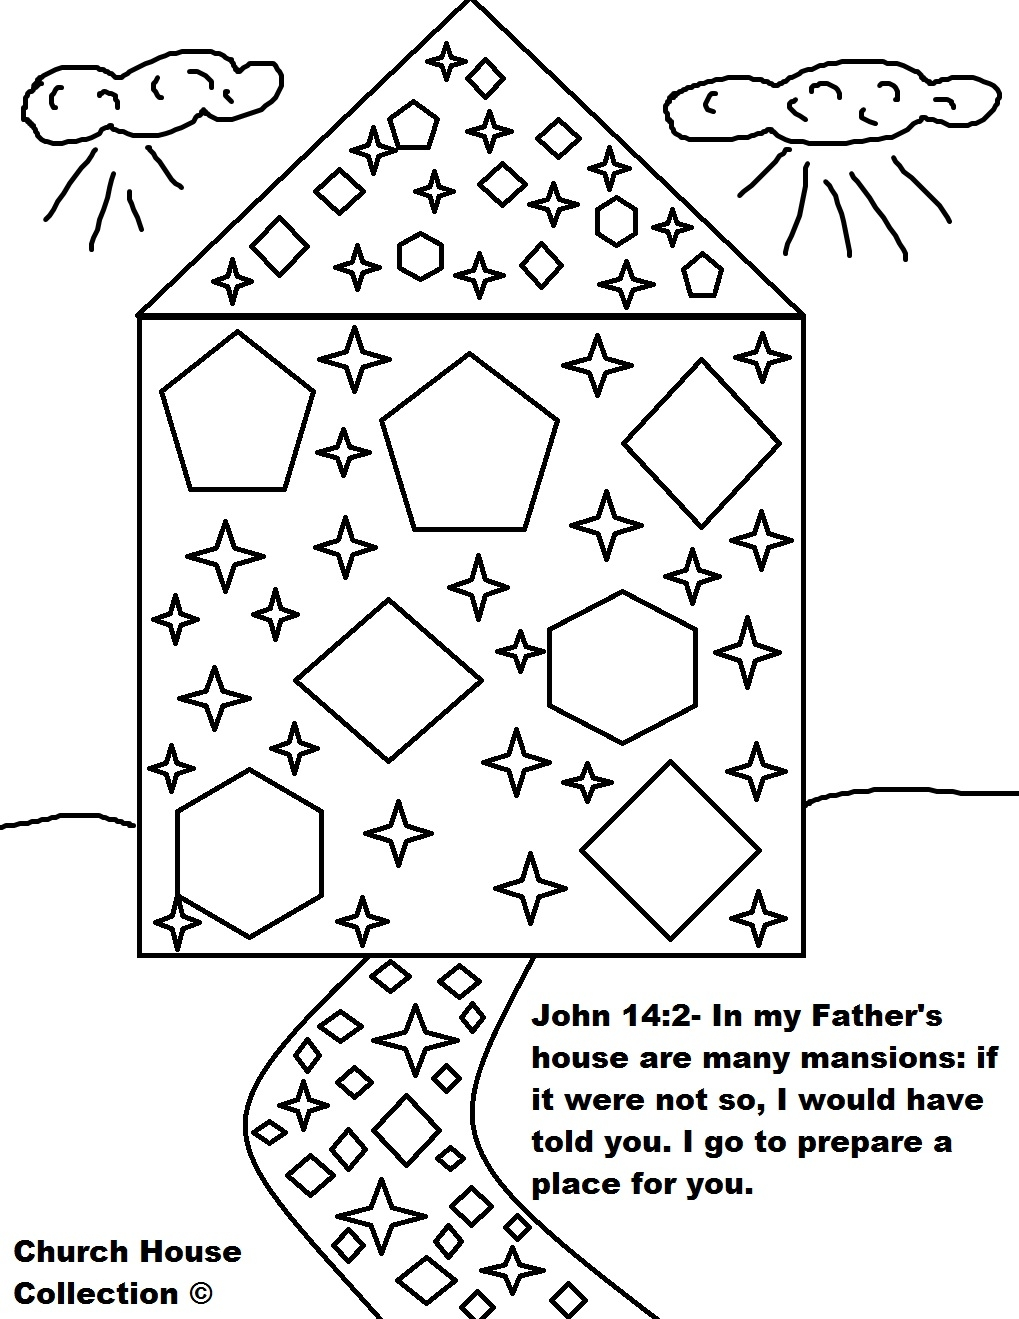 heaven coloring pages - heaven coloring pages